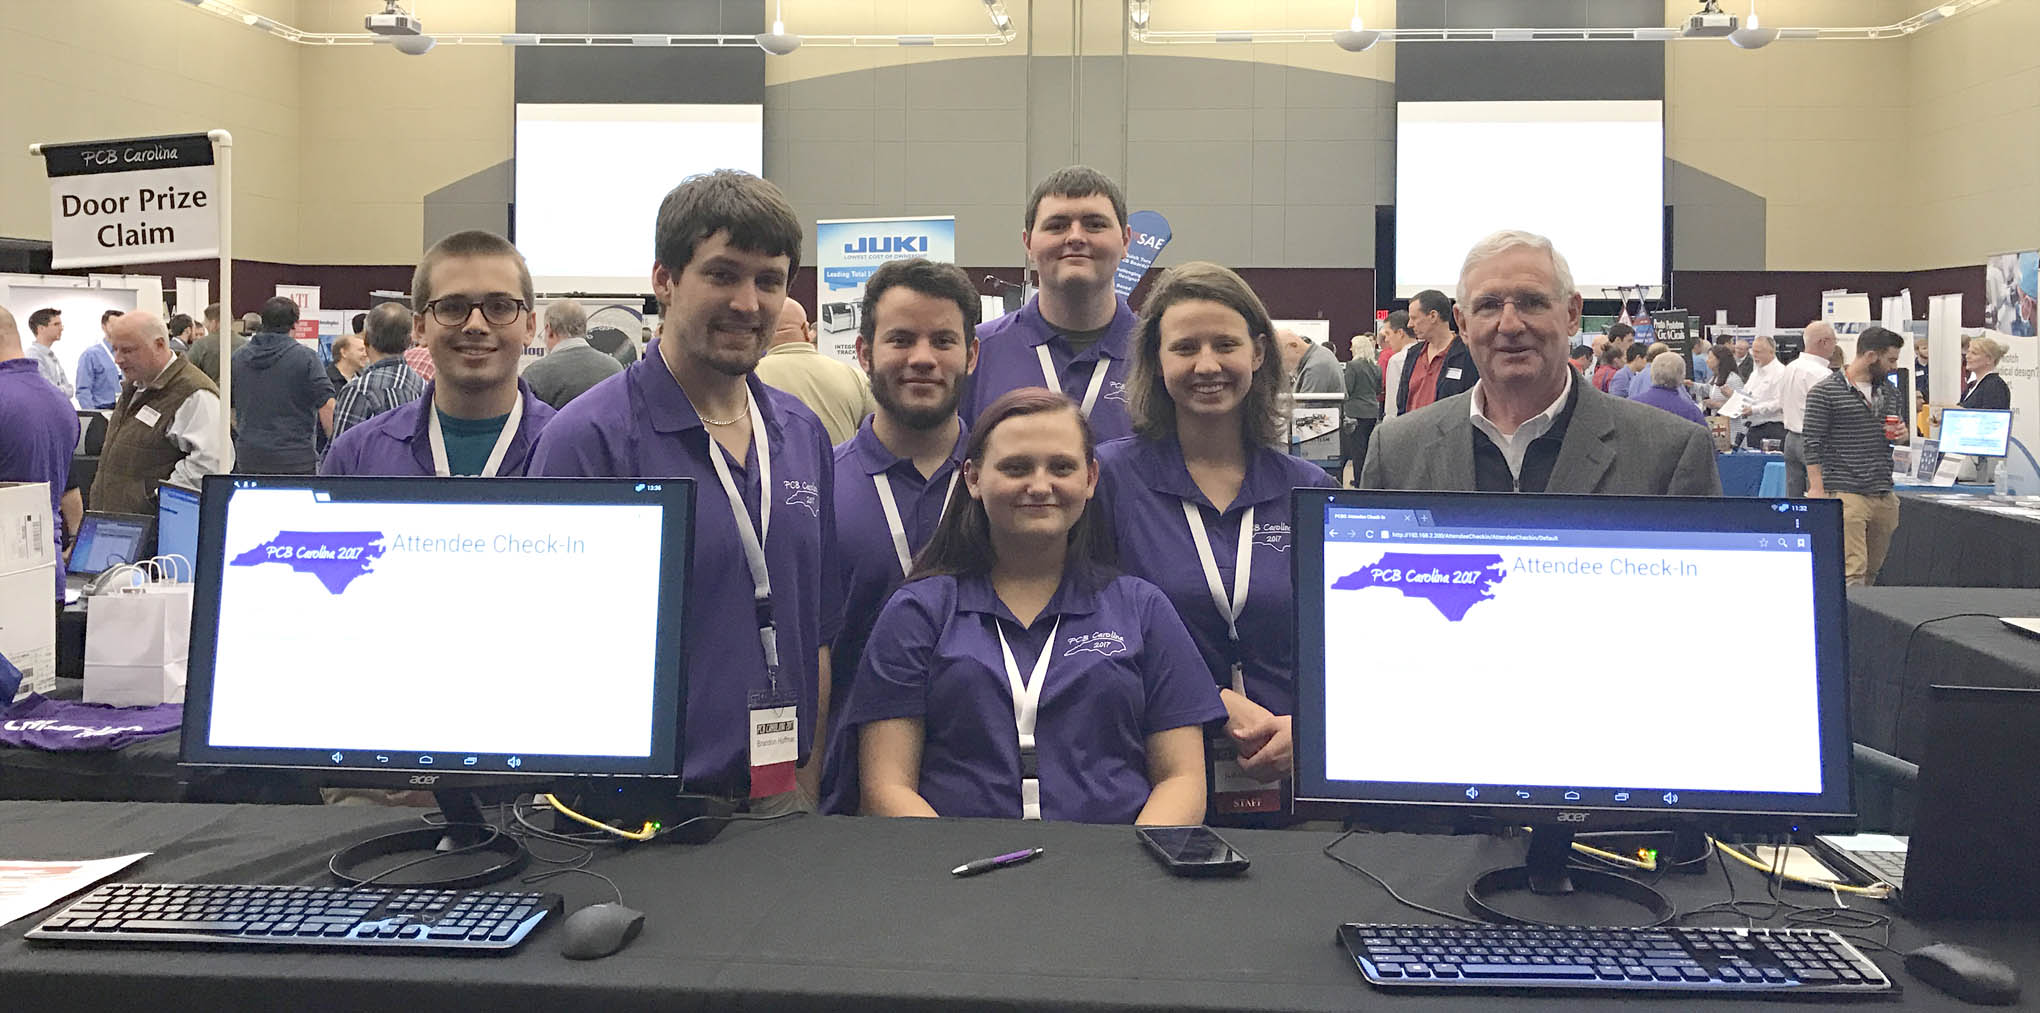 Read the full story, CCCC Laser and Photonics students volunteer for technical conference